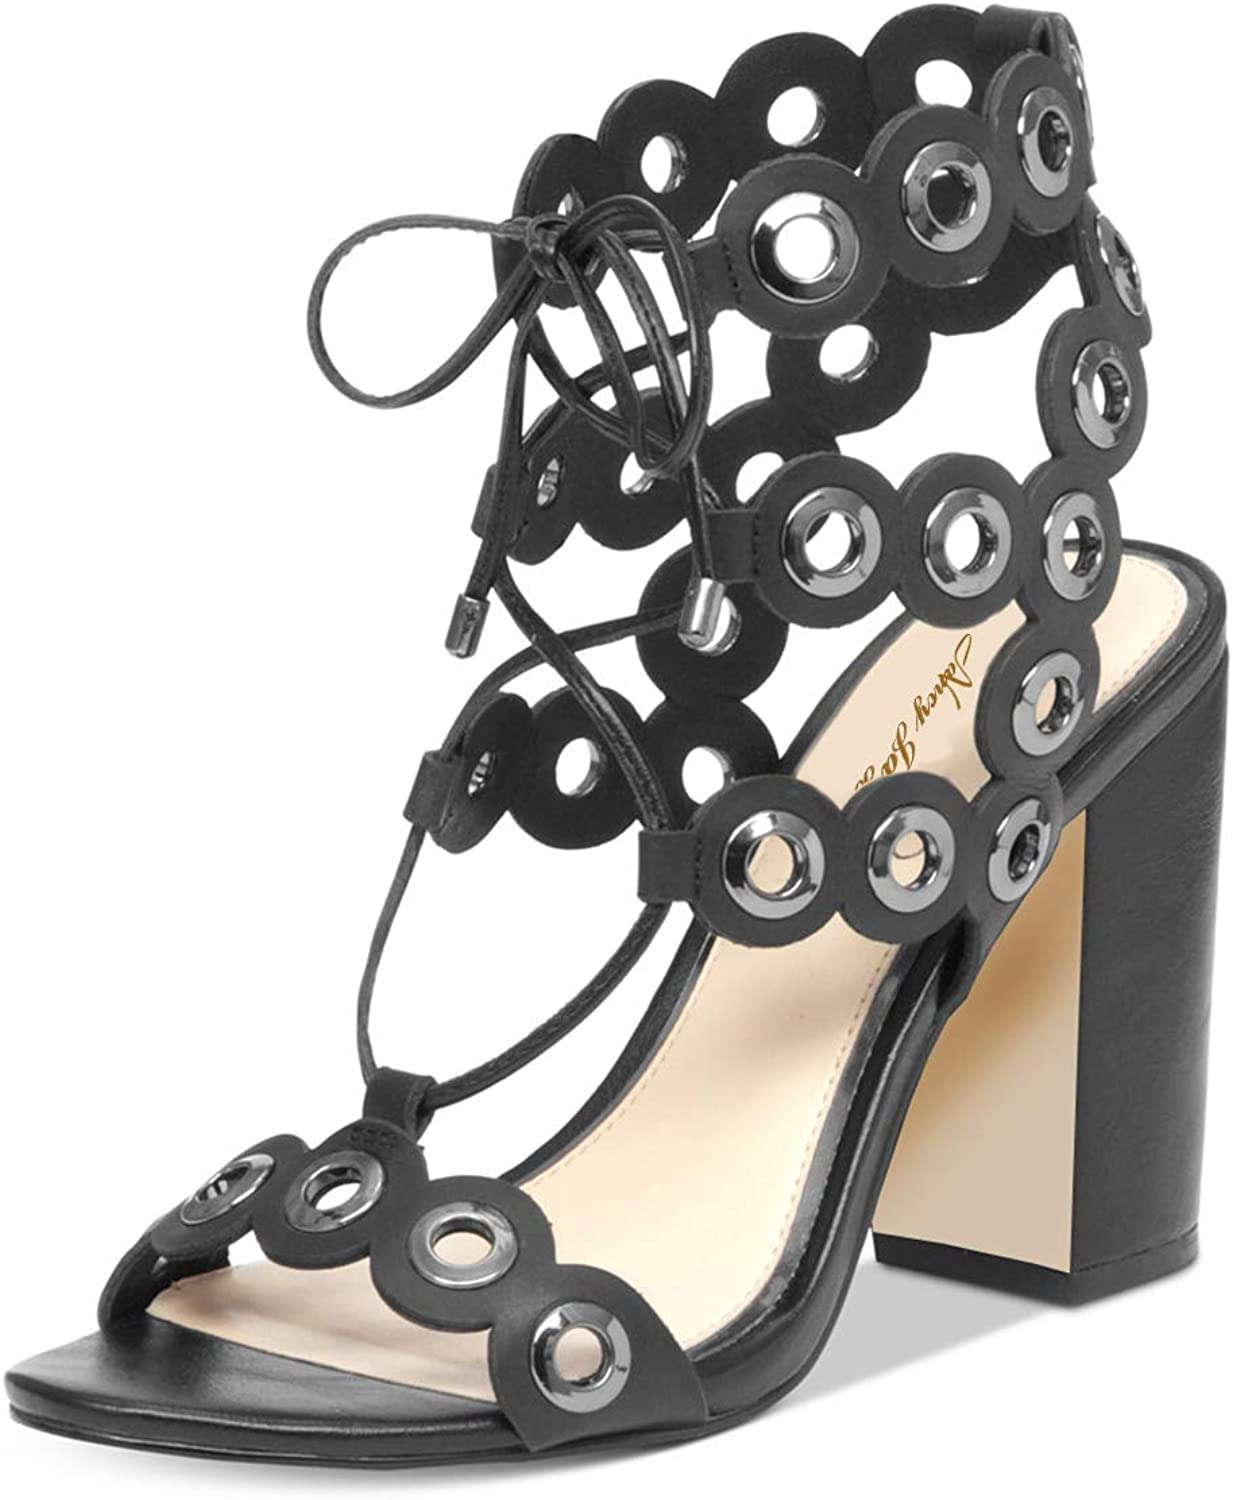 NJ Women Stylish Ankle Strap Lace Up Sandals Open Toe Chunky High Heels Party Pumps shoes with Metal Rings